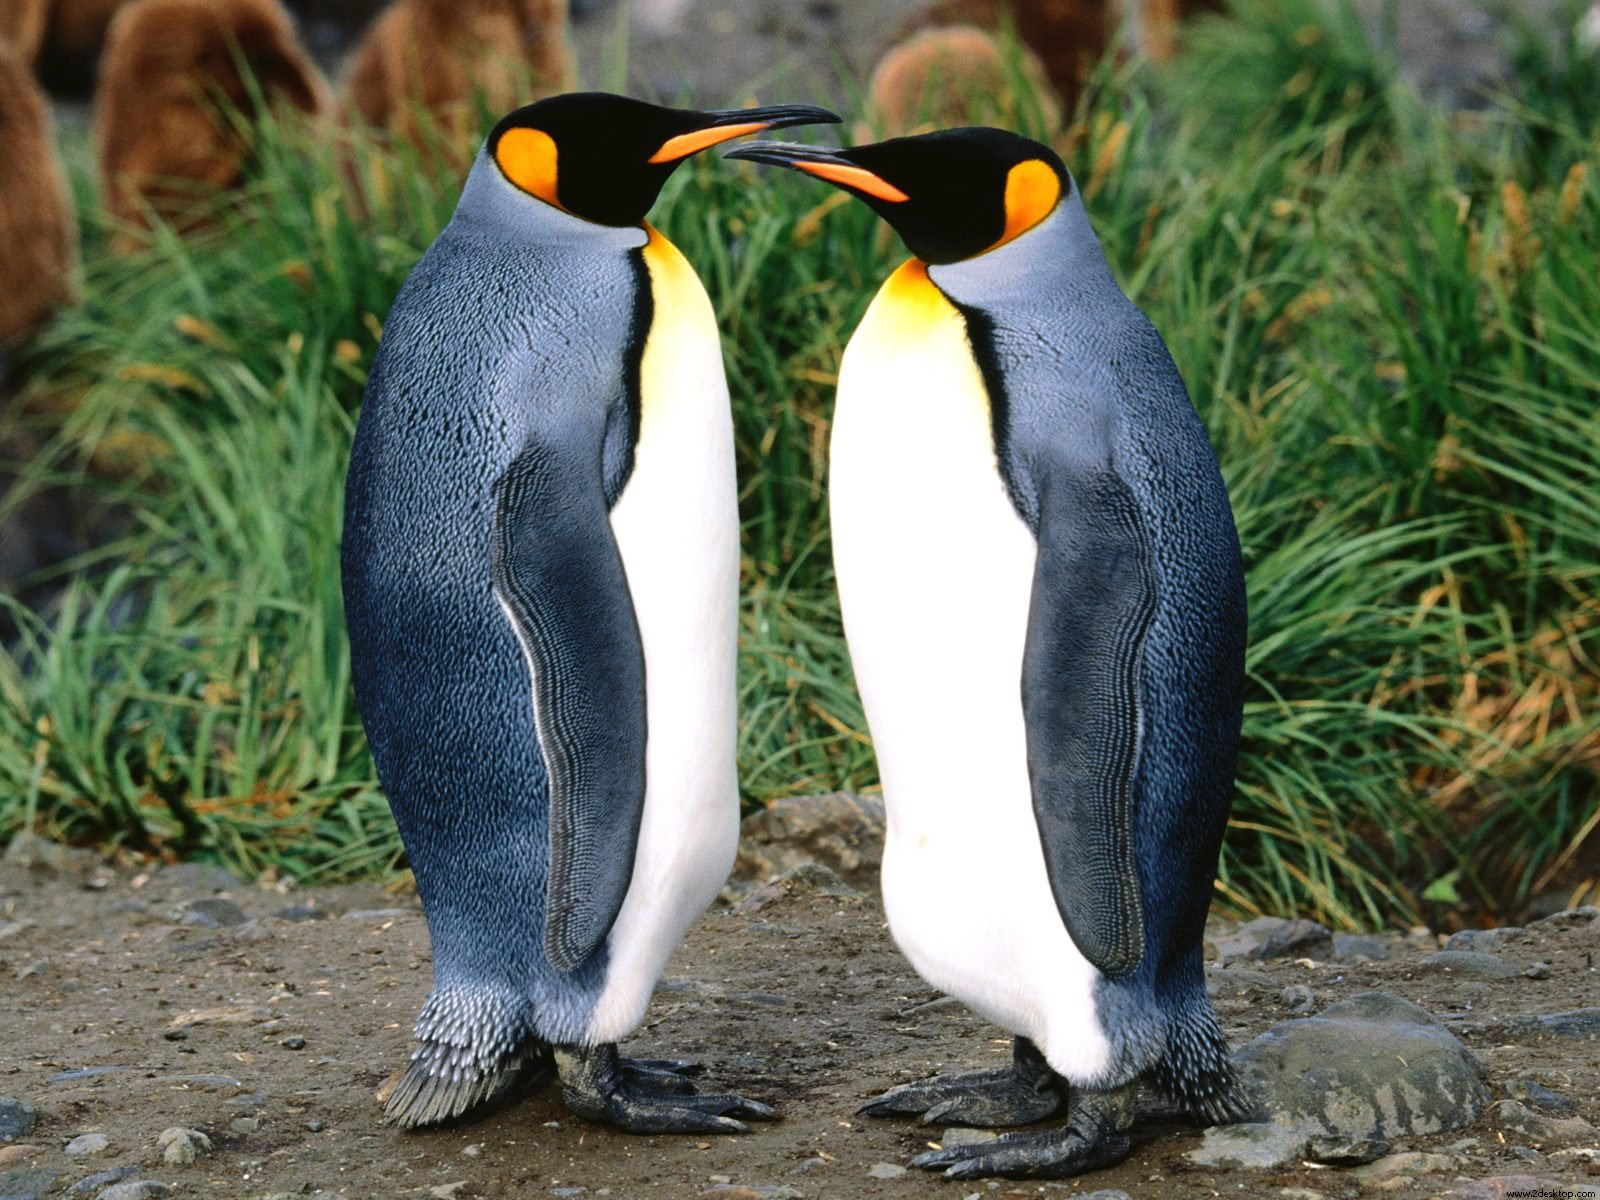 King Penguins 461.33 Kb